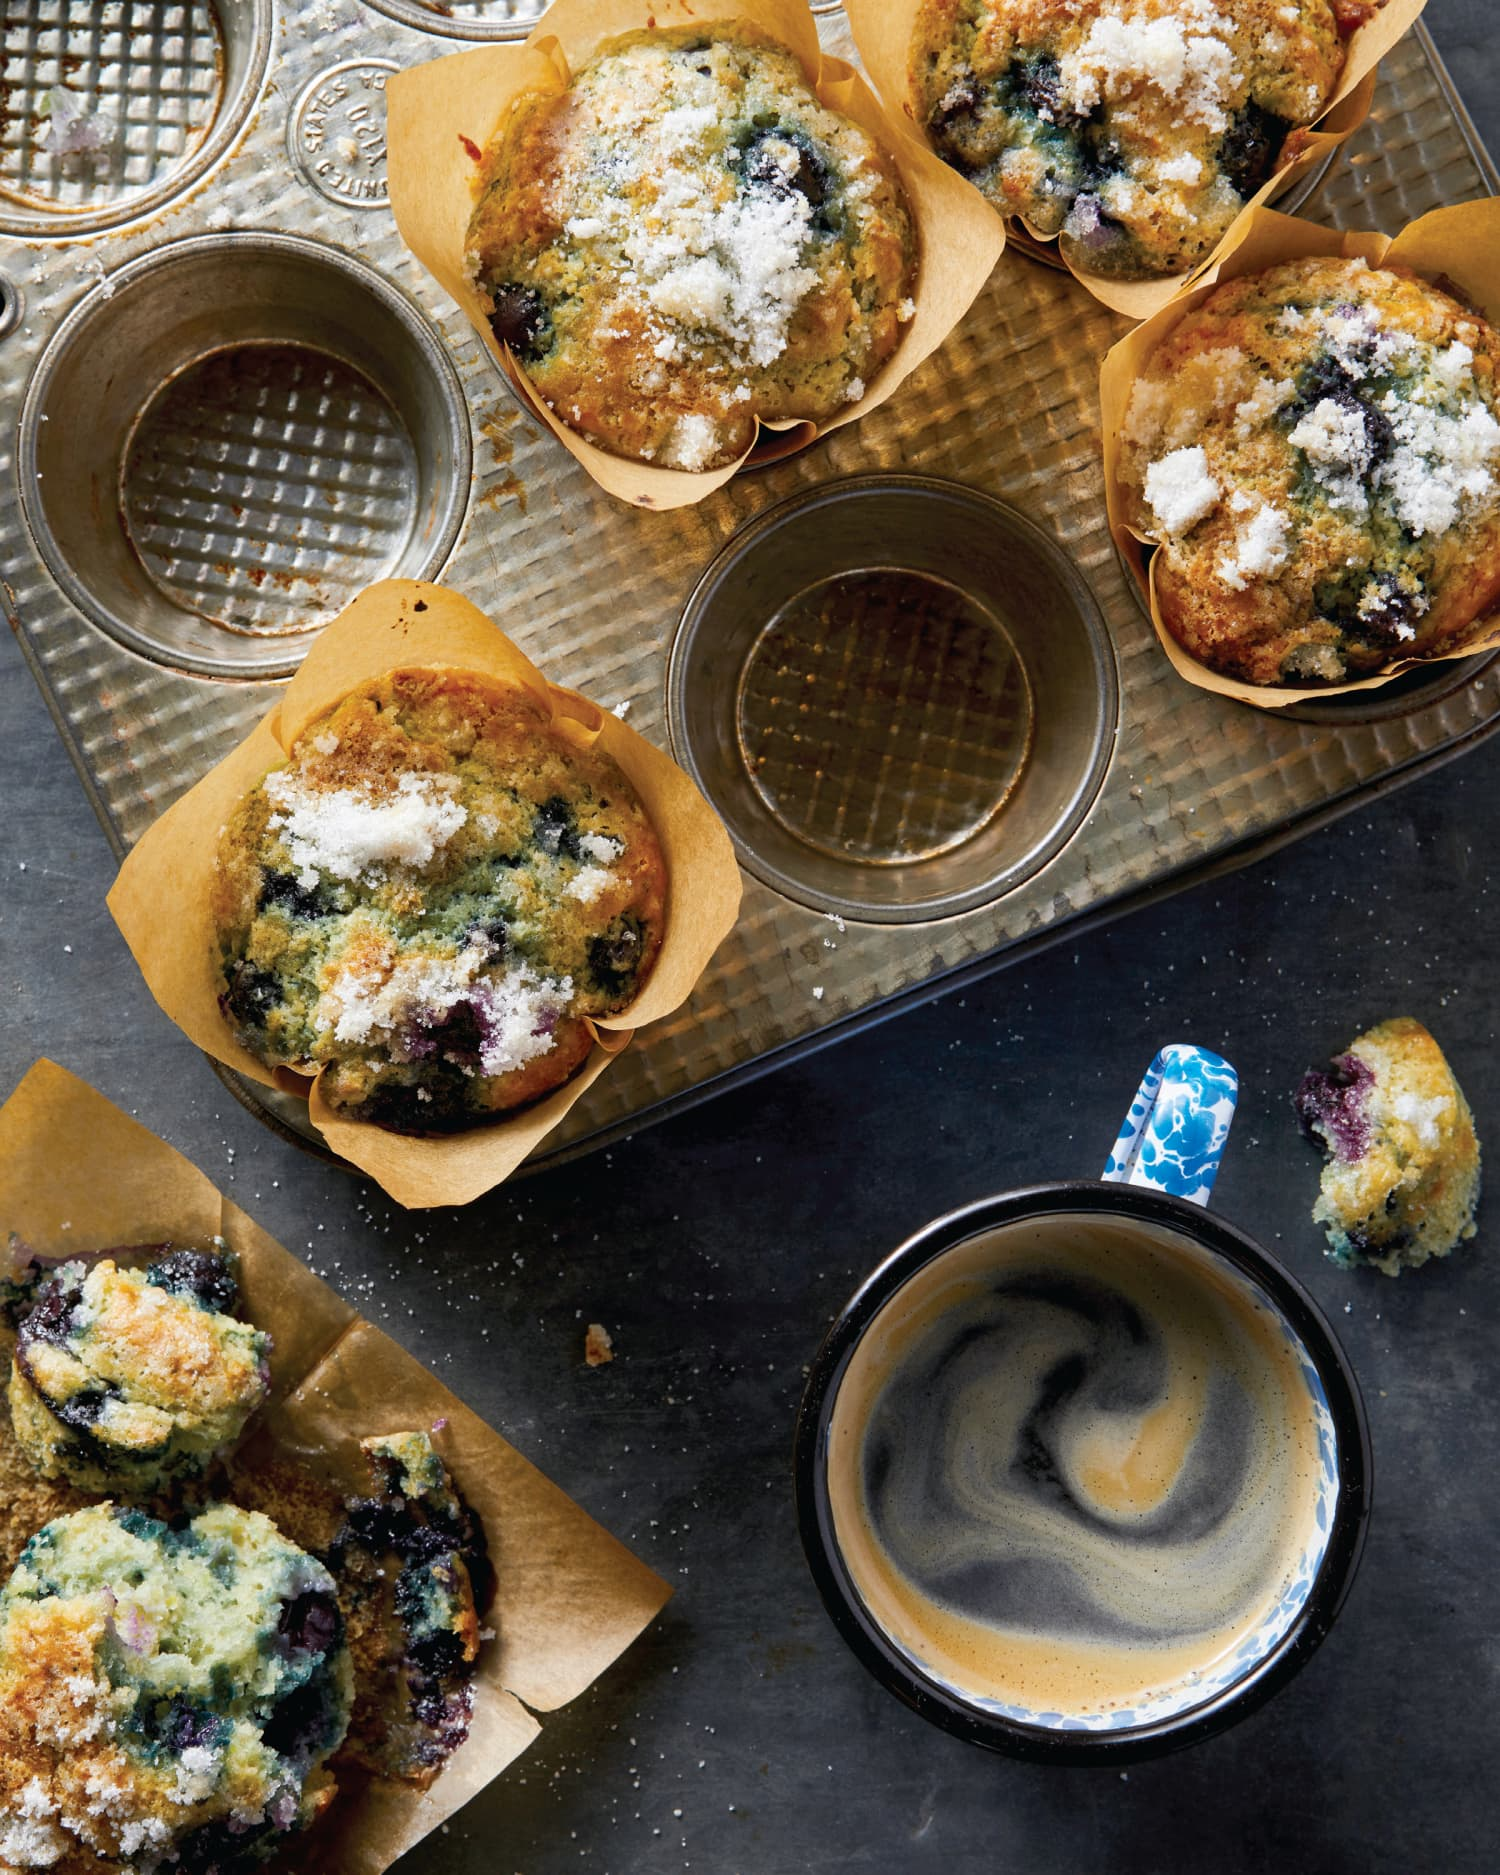 Scone-Top Blueberry Muffins Are the Best of Both Worlds